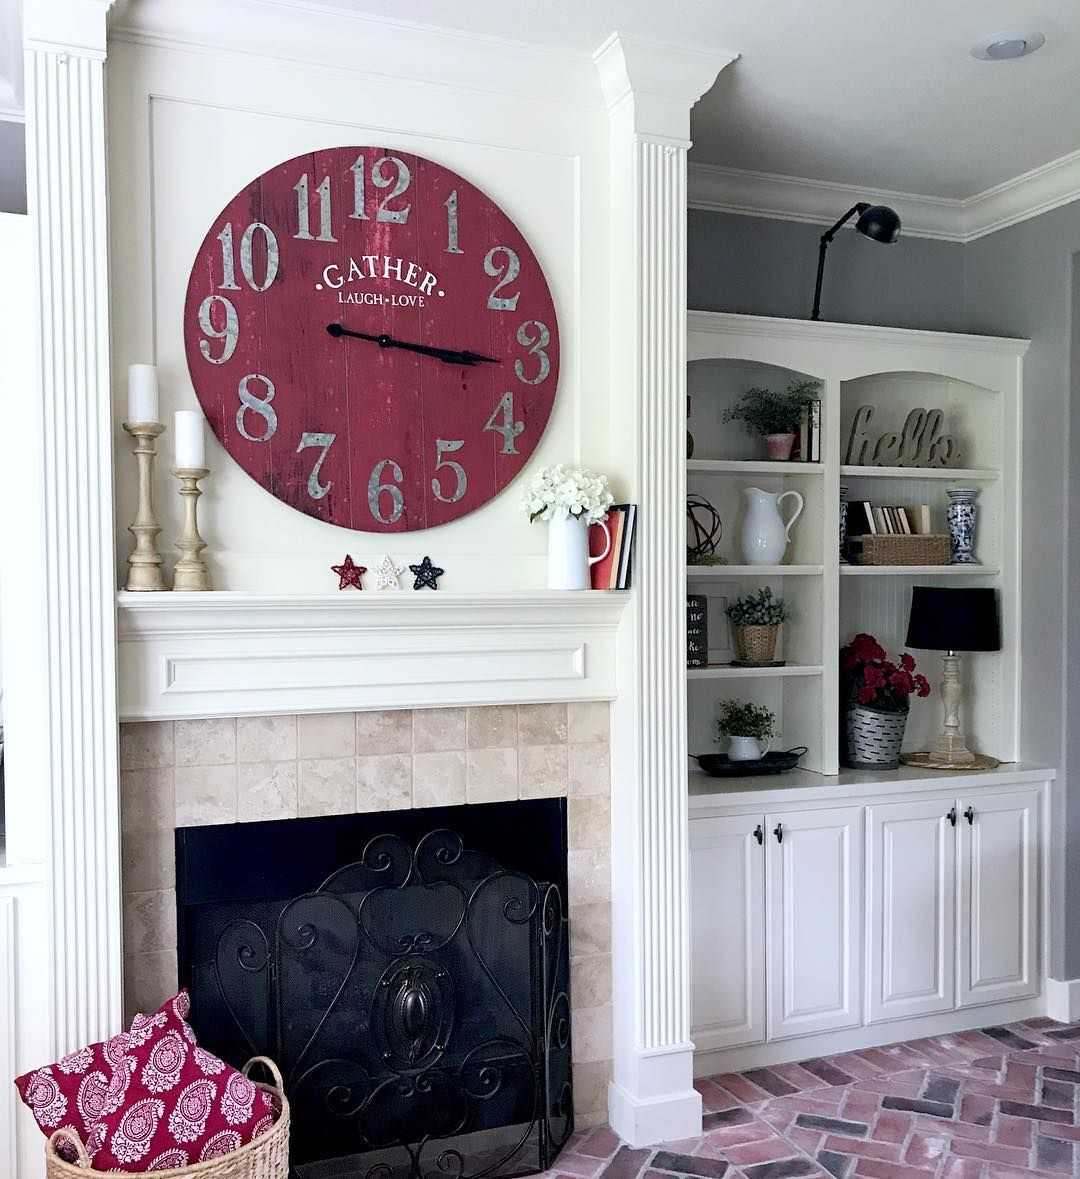 Clock Over Fireplace Inspirational No Photo Description Available Etsy Shop In 2019